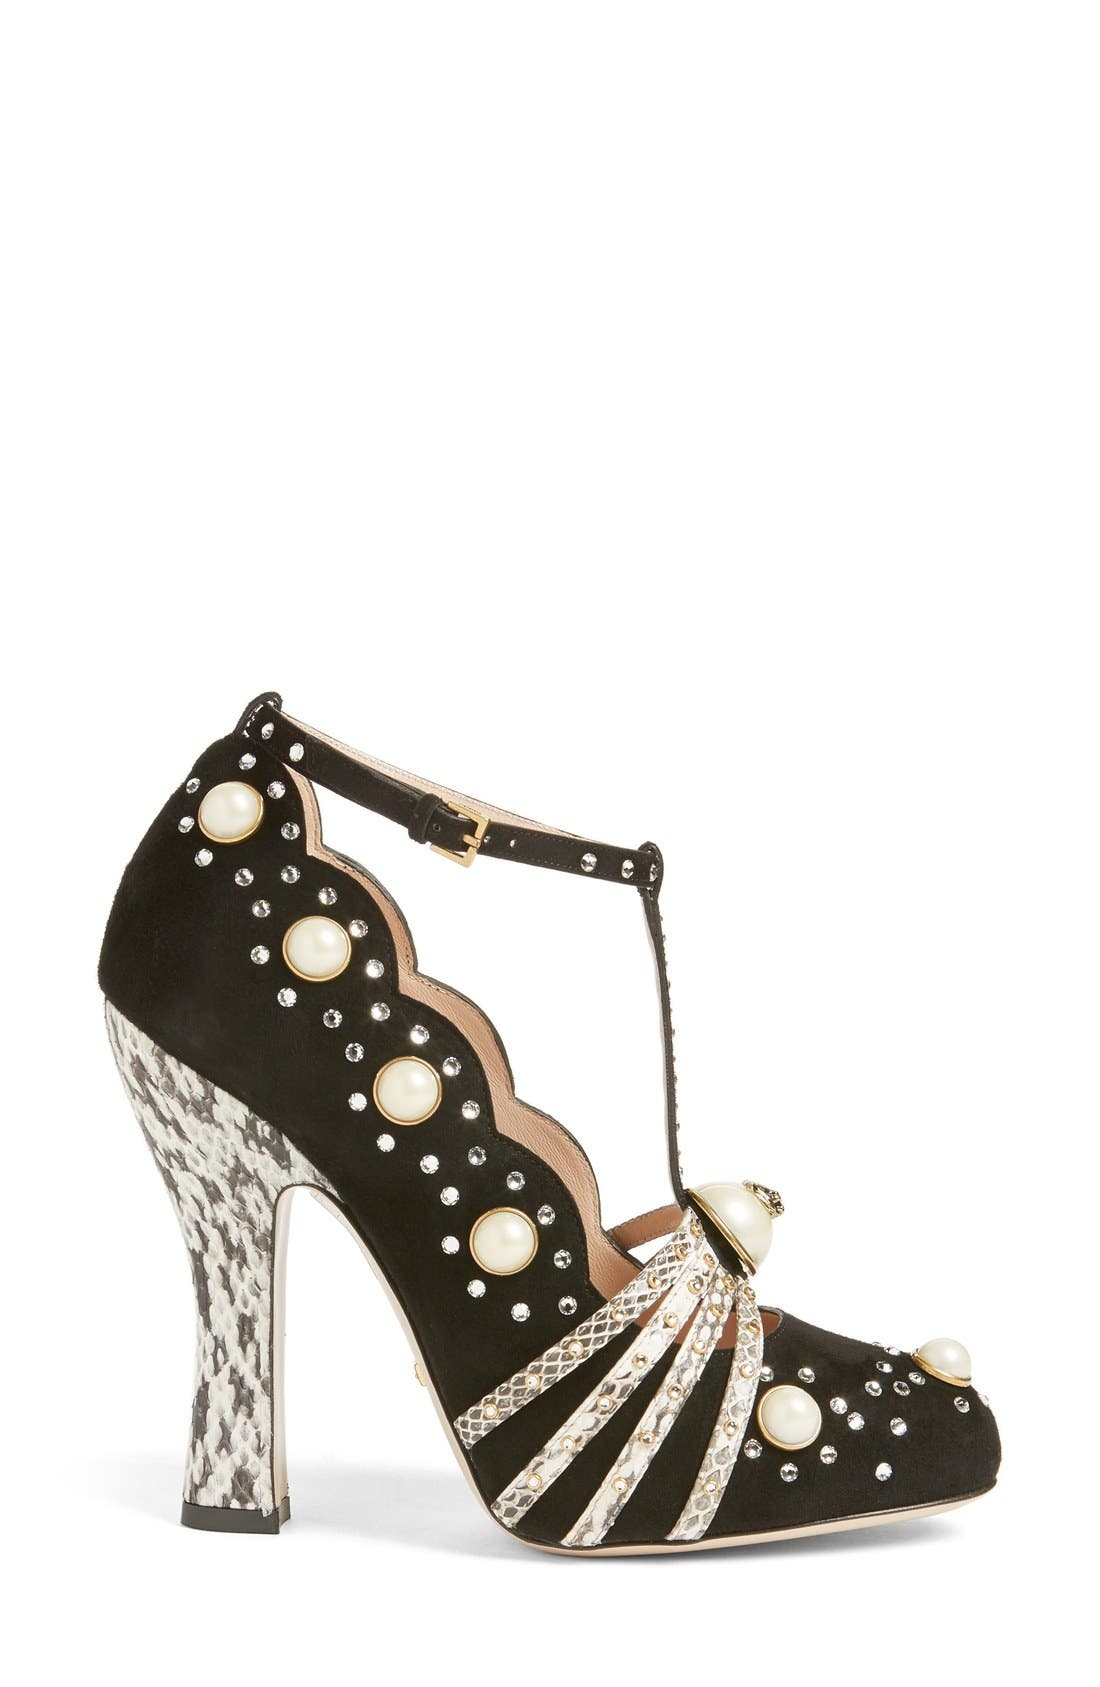 Ofelia Pearly Crystal Embellished Pump,                             Alternate thumbnail 4, color,                             001